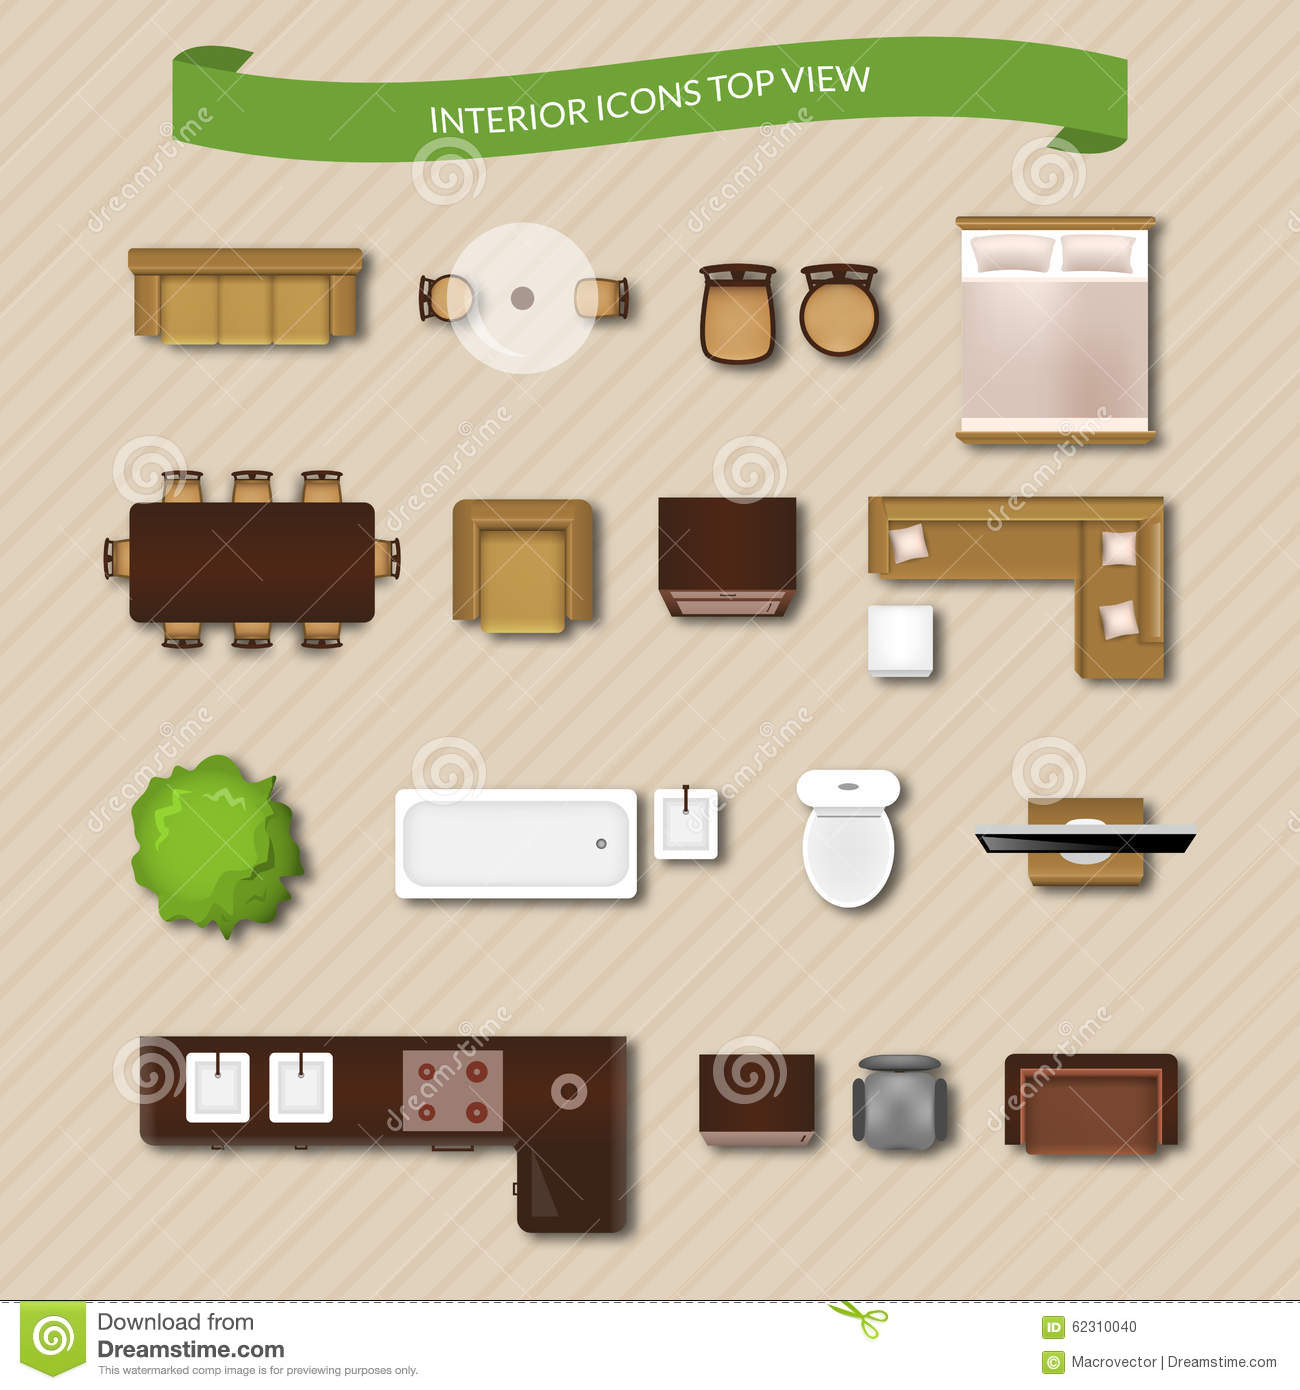 Top View Furniture Icons Vector Illustration